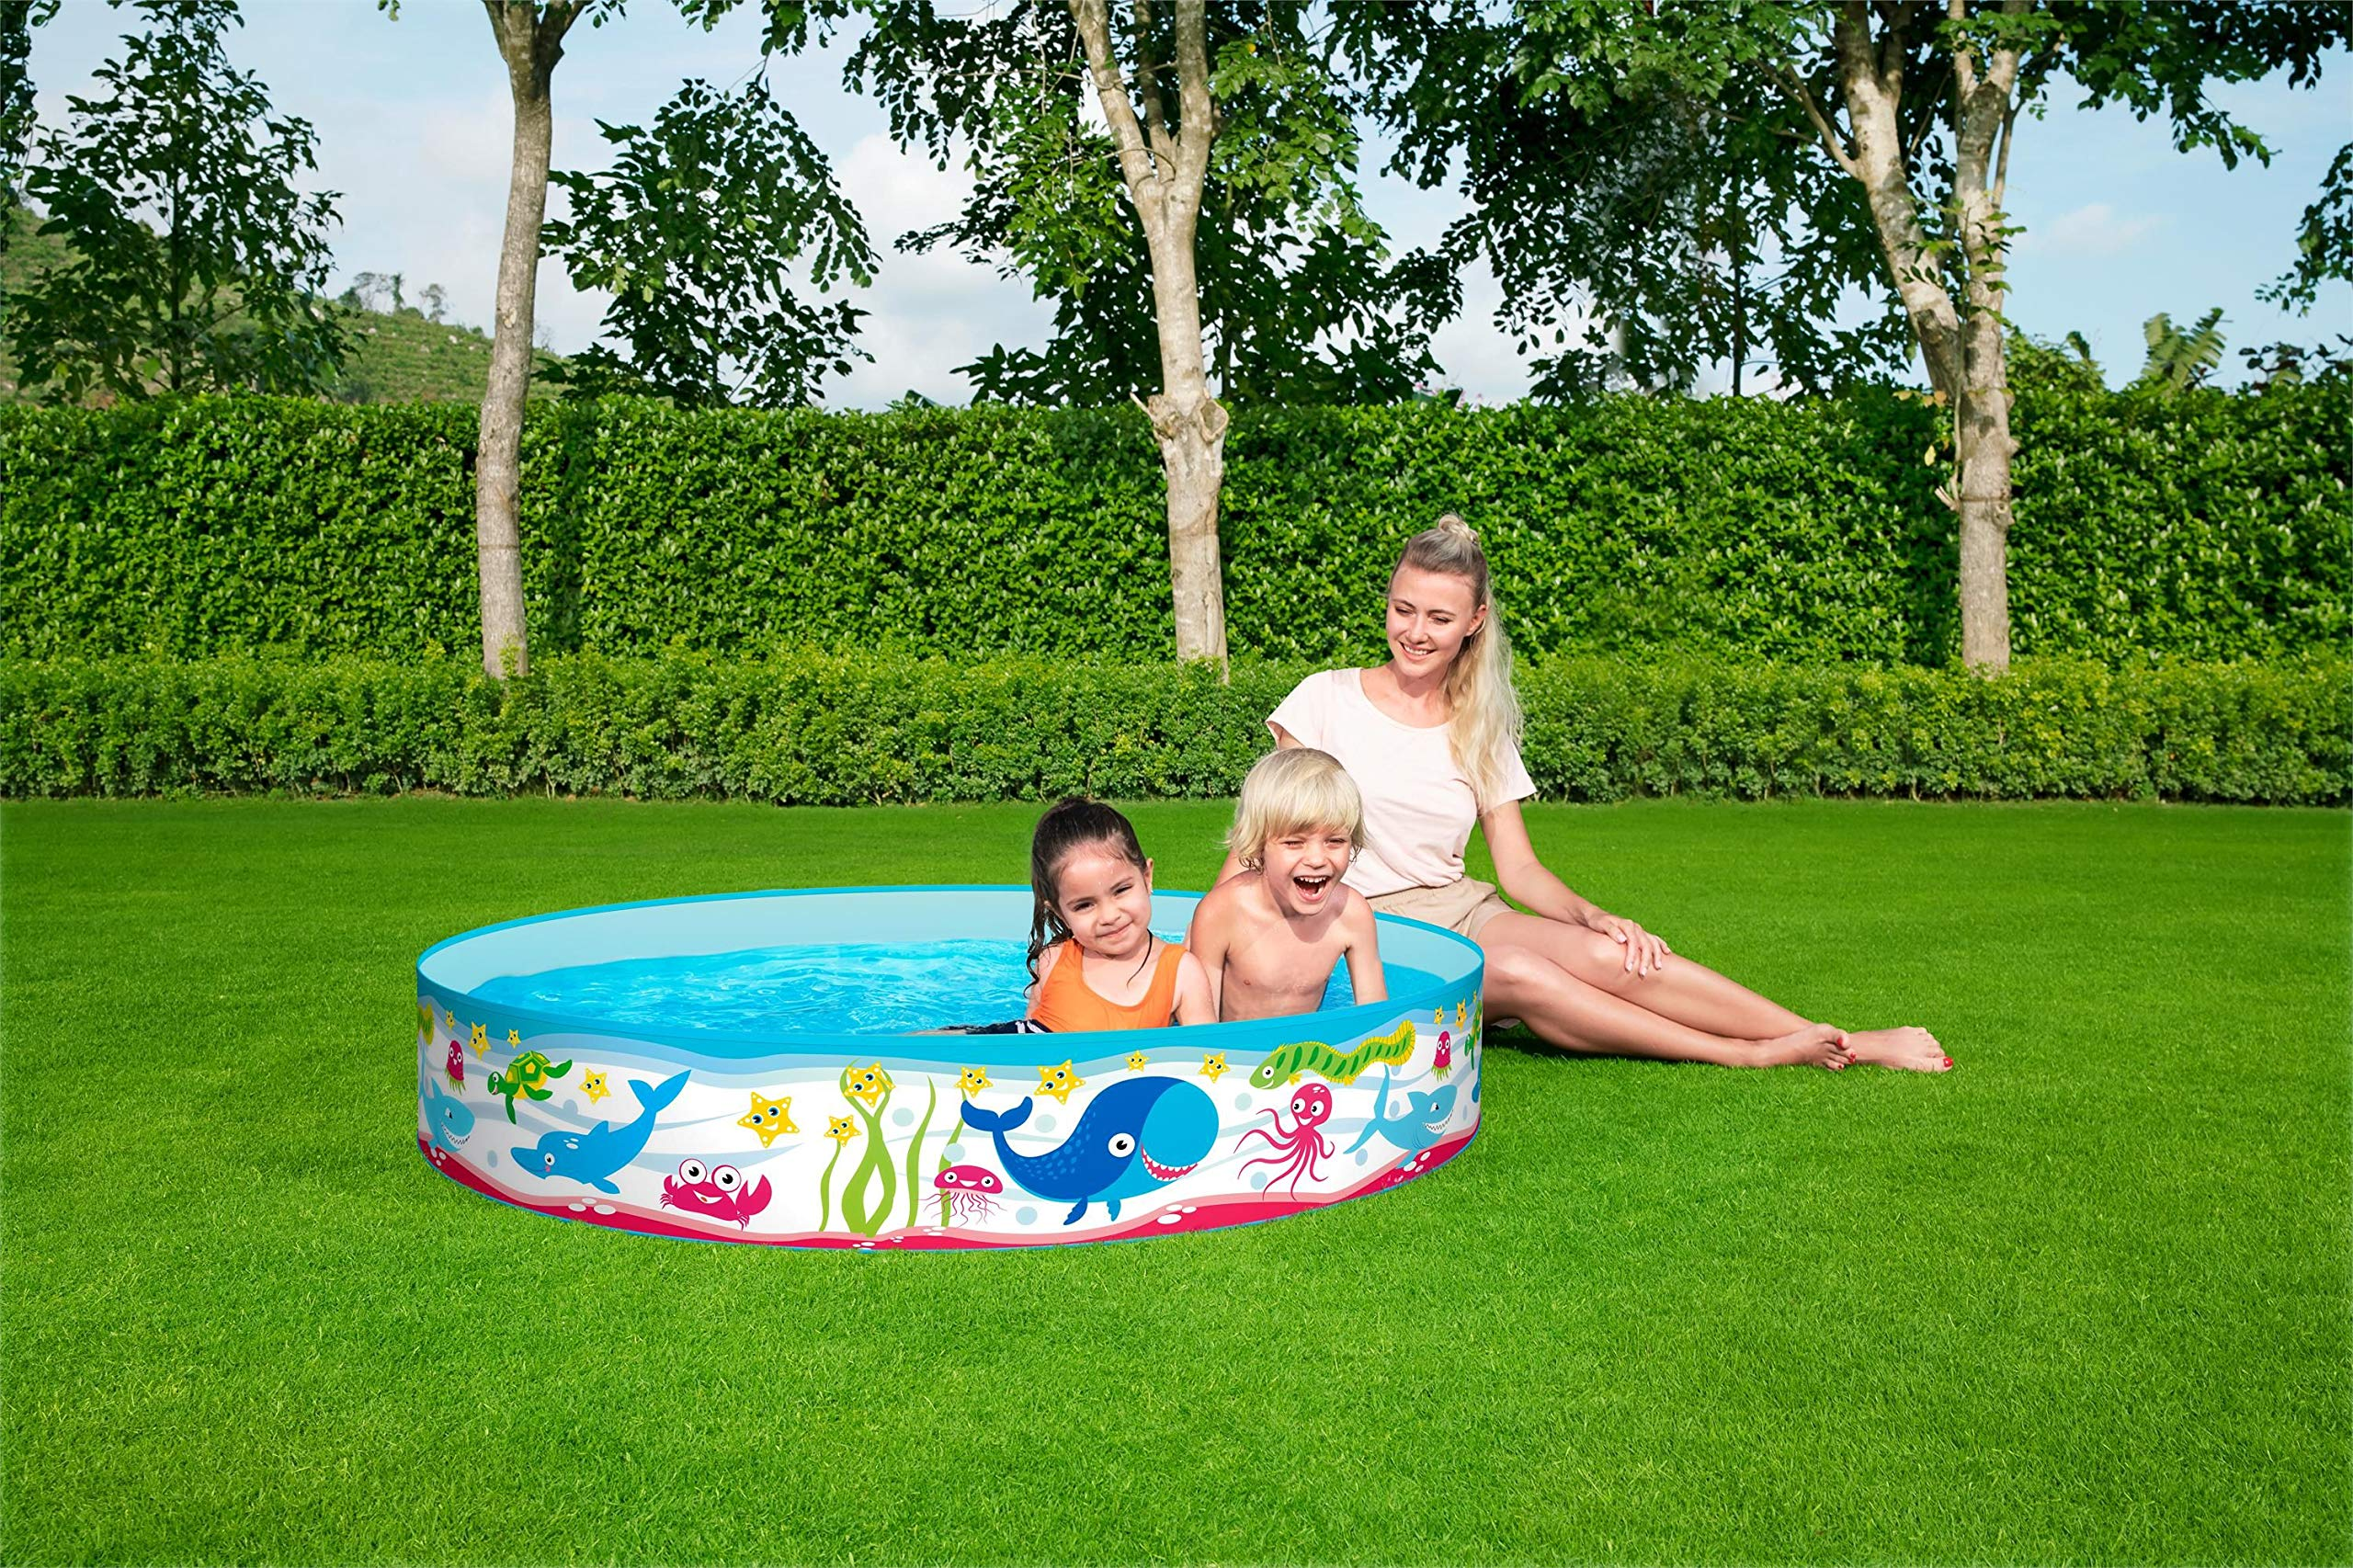 Piscina Infantil Bestway Fill N Fun Odyssey 152 cm: Amazon.es ...